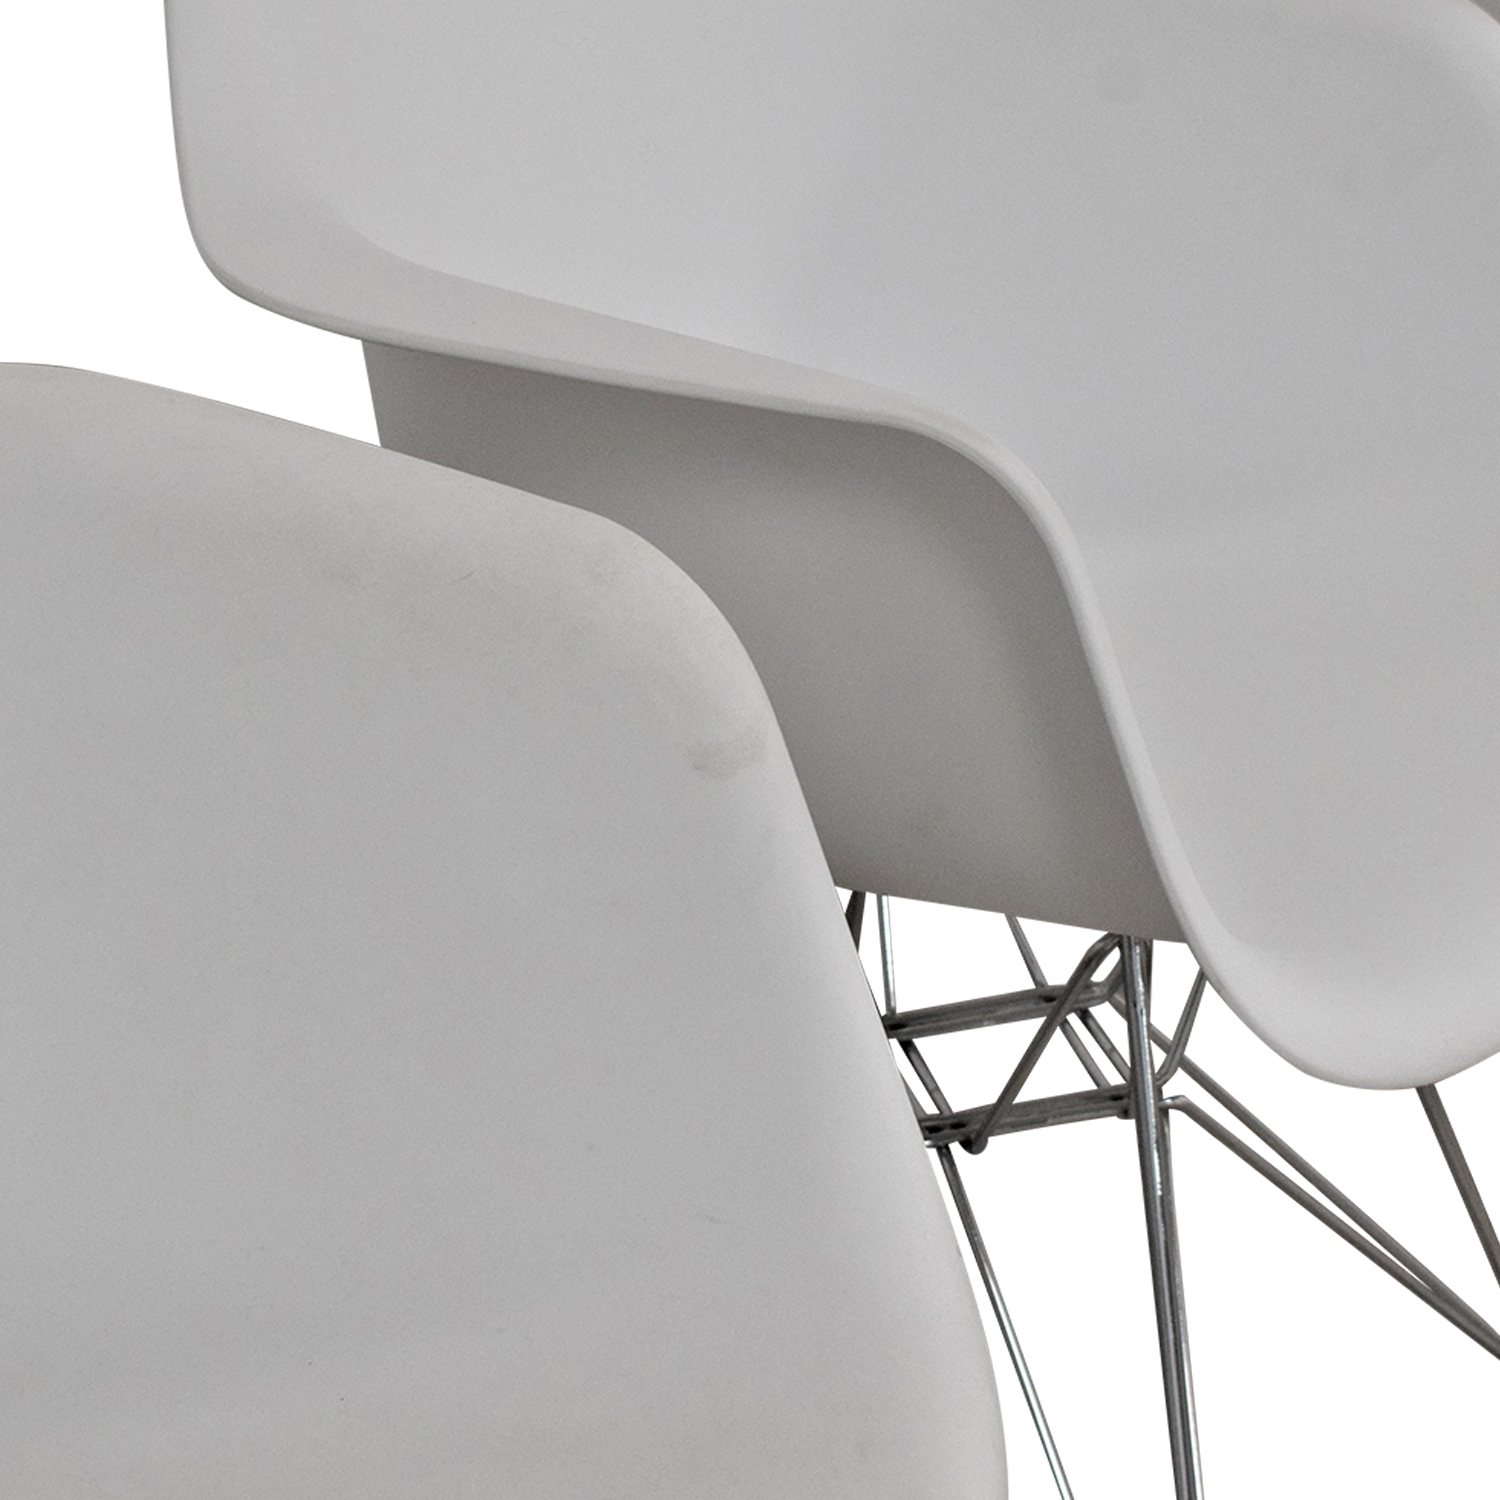 Modway Modway Paris Dining Chairs used